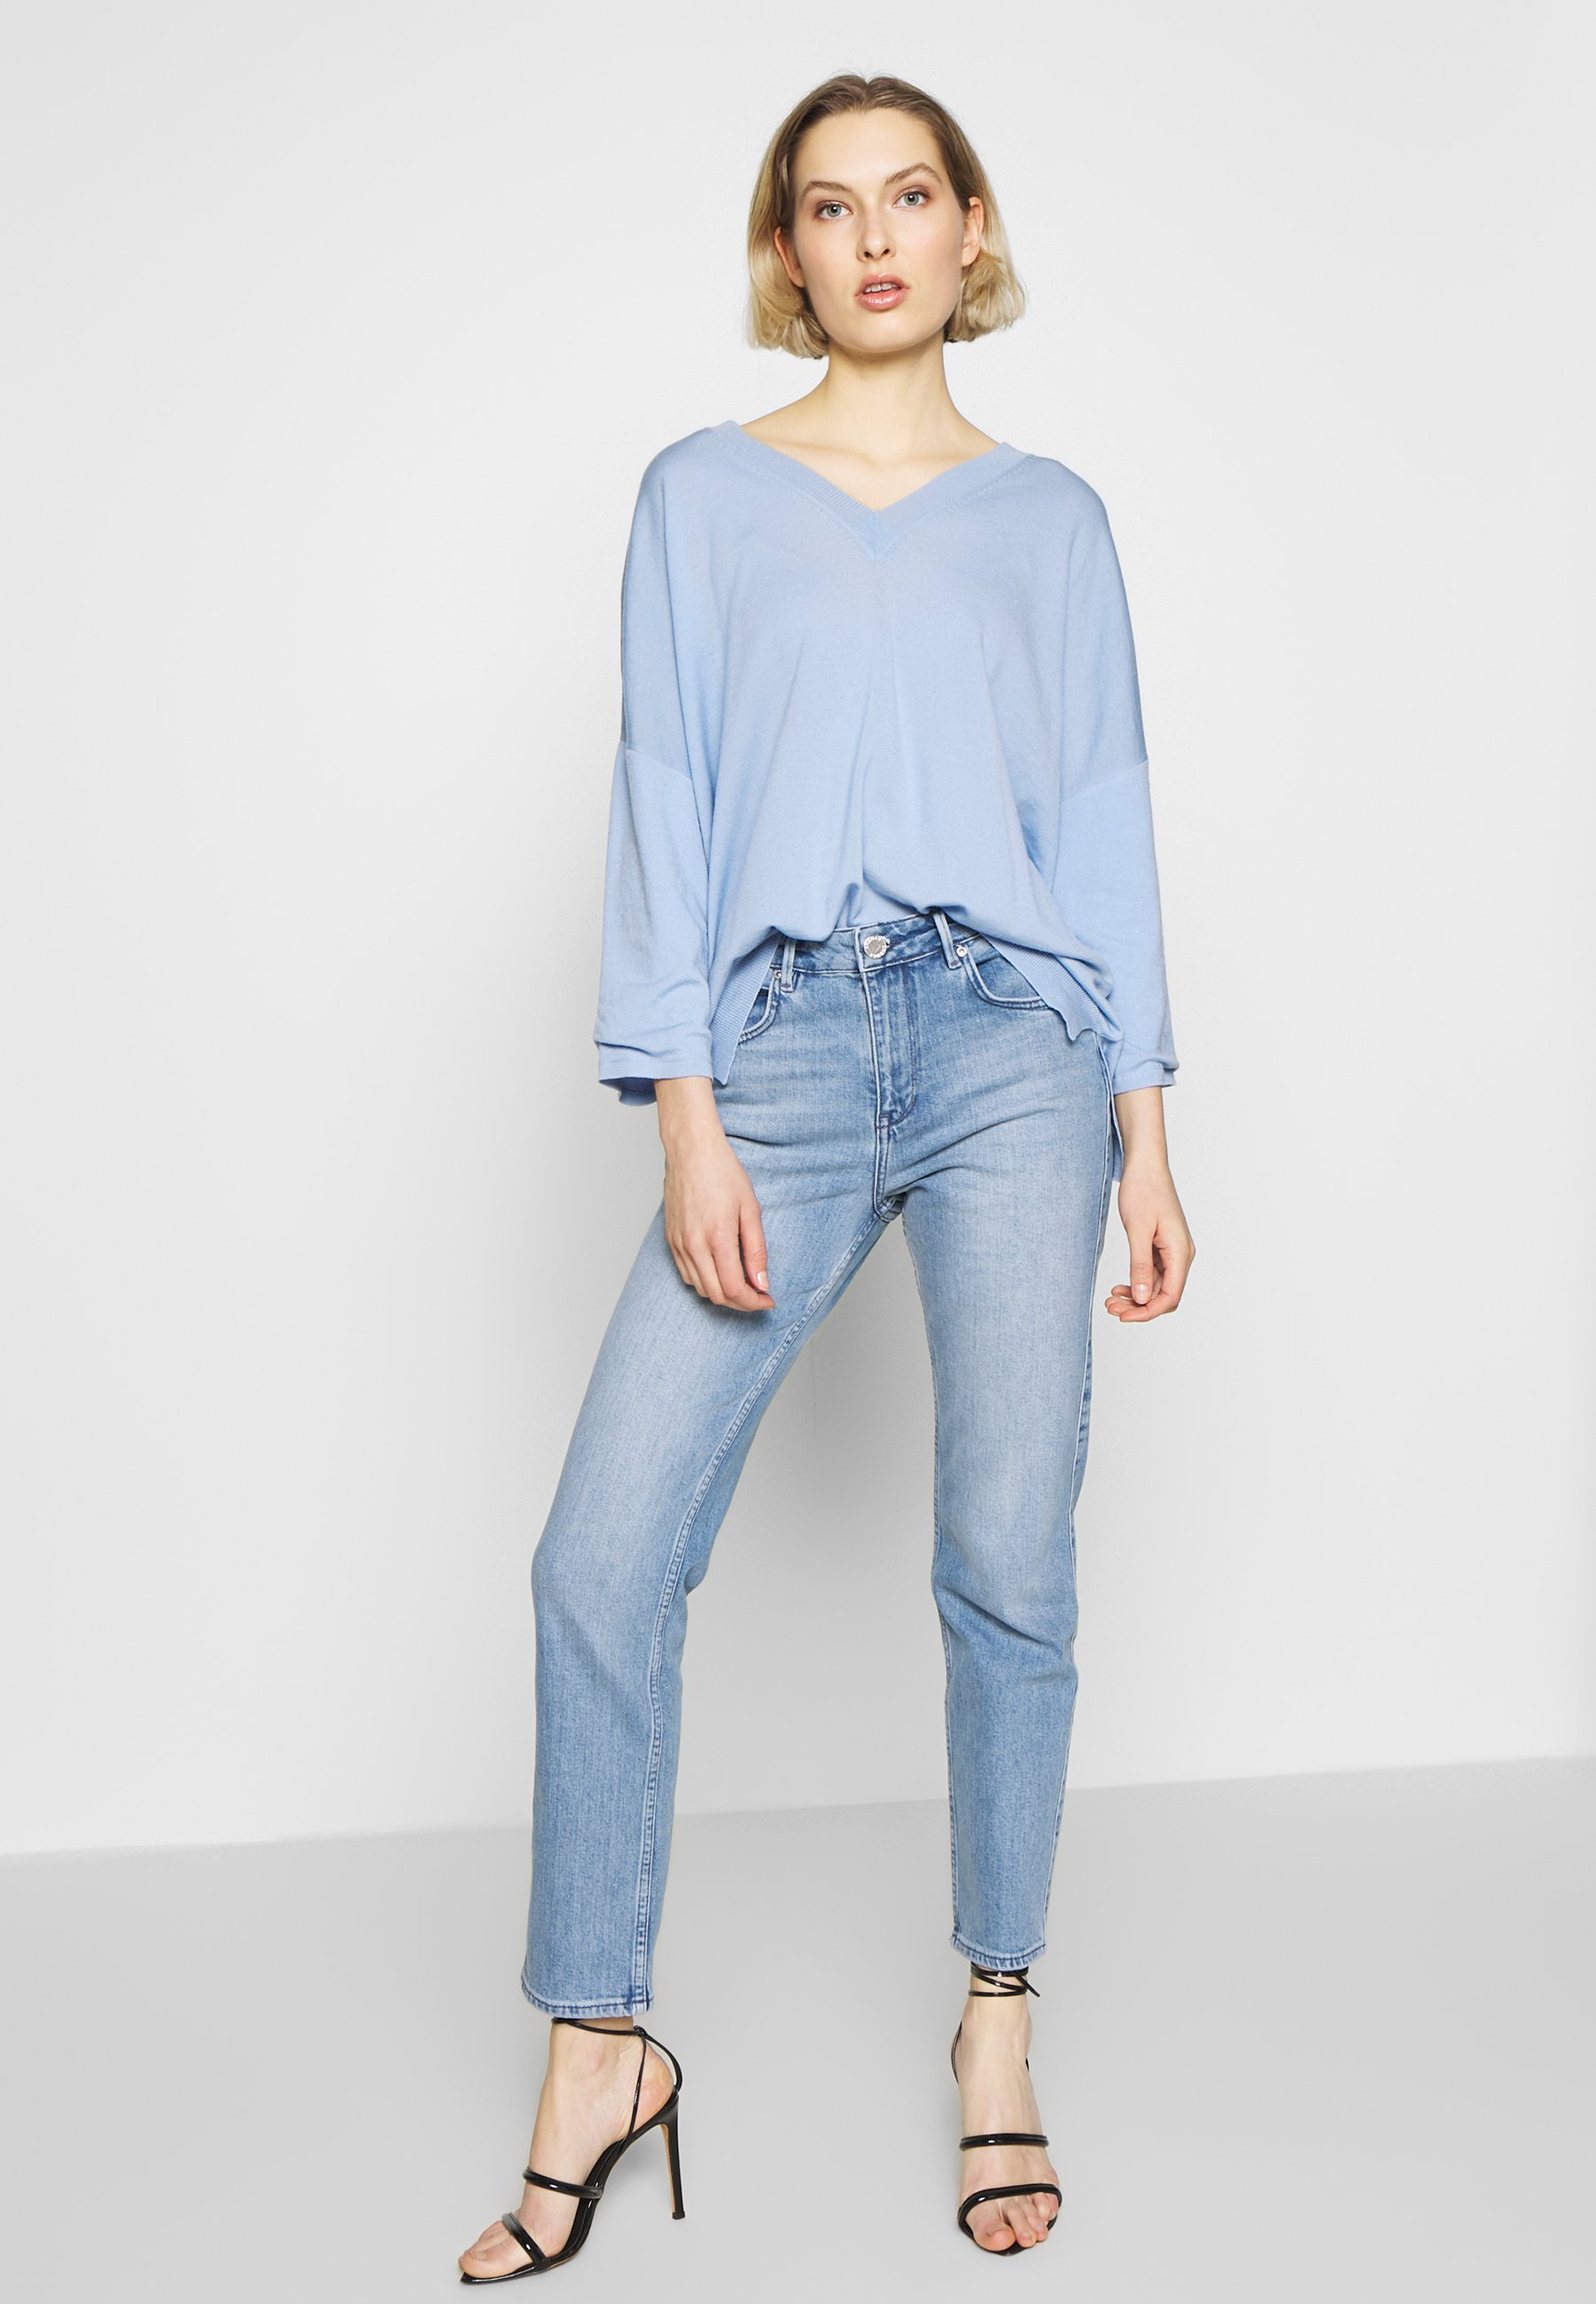 2nd Day Riggis Slit Thinktwice - Jeans Straight Leg Light Blue